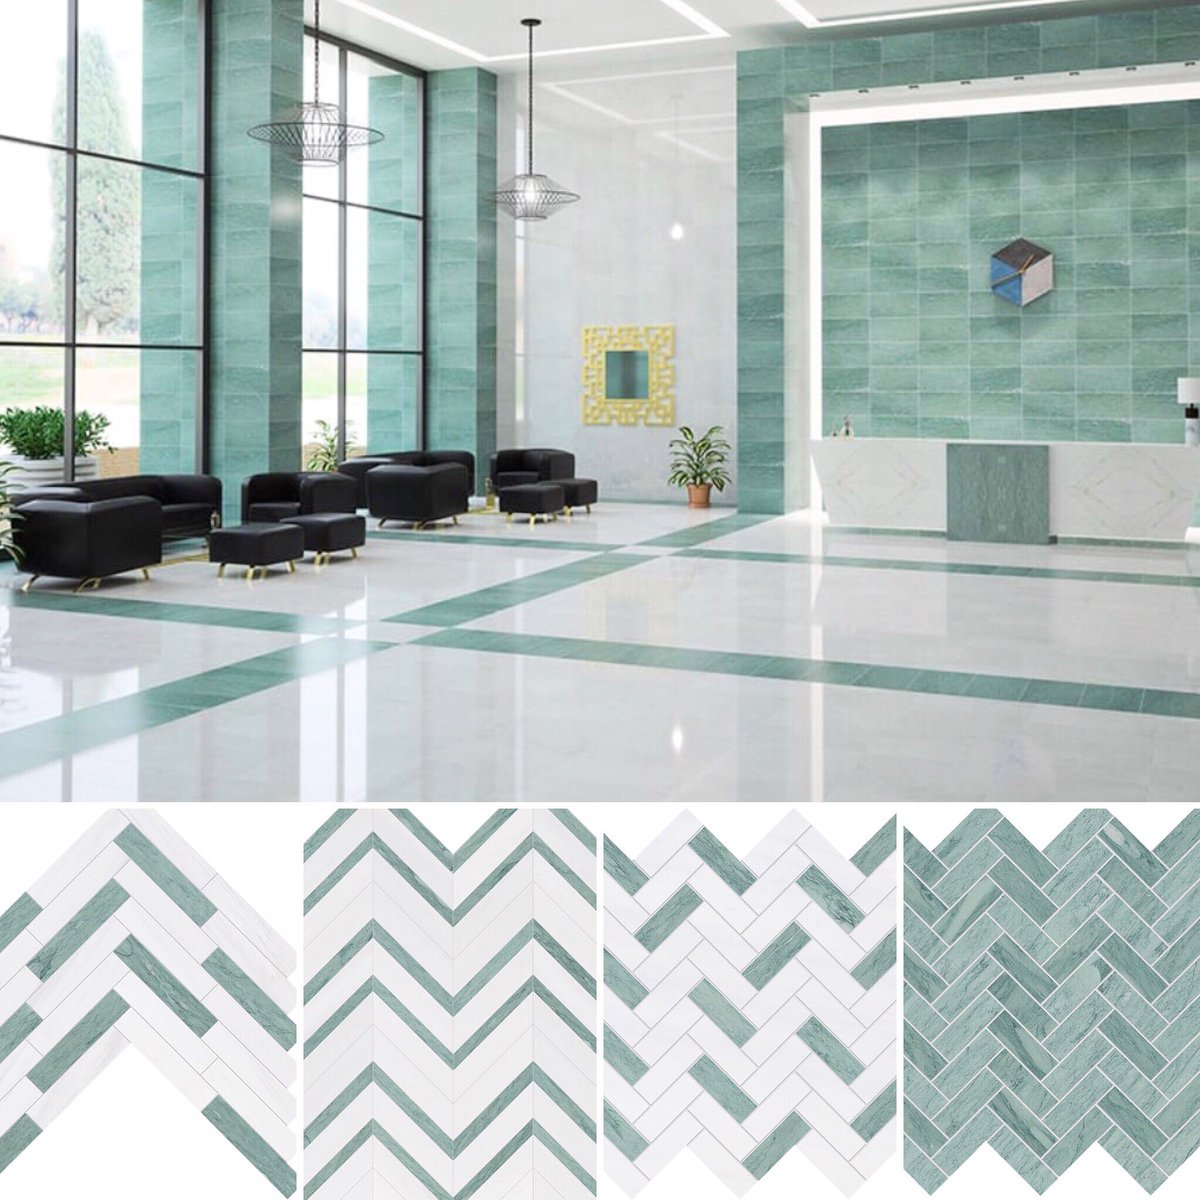 Marble Systems Inc On Twitter Green Is In Add A Splash Of Color To Your Next Design Our Verde Capri Collection Is An Elegant Light Green Marble Available As Tile Mosaic Molding